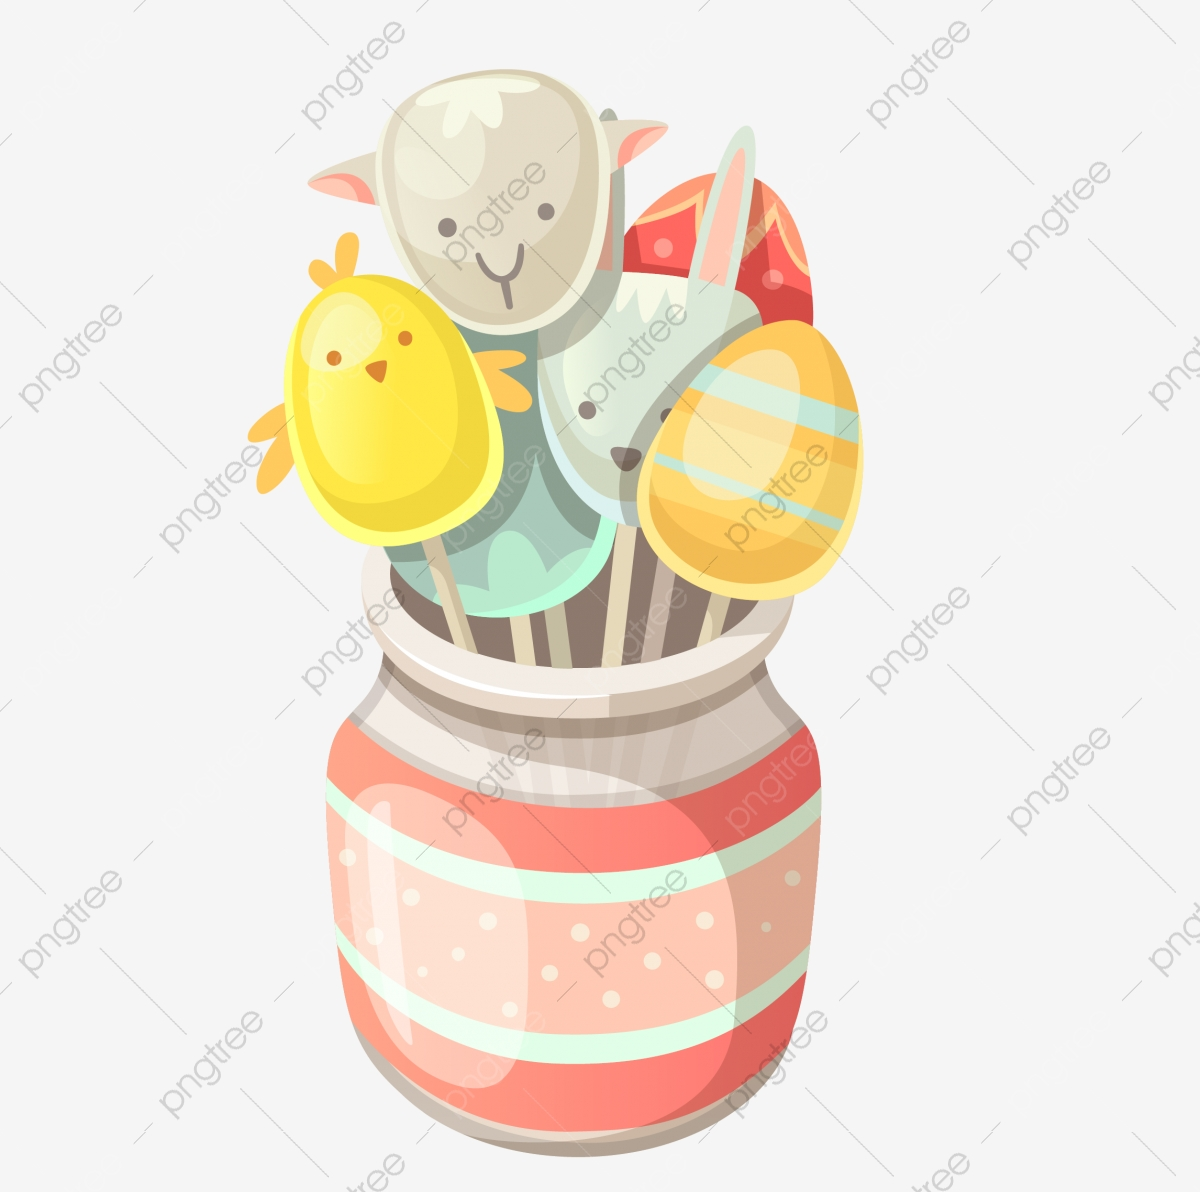 Candy Jar, Candy, Jar, Hand Painted PNG Transparent Clipart Image.